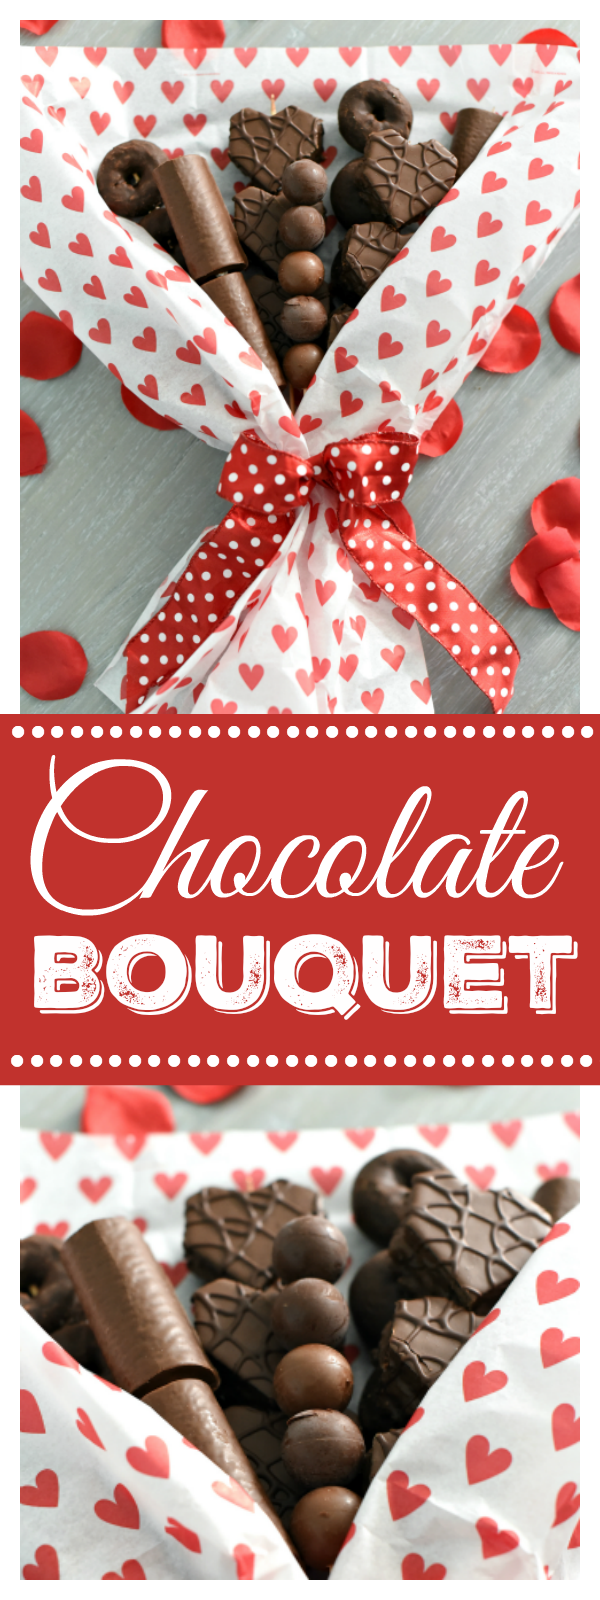 Chocolate Bouquet-This is a Perfect Gift for Valentine's Day! Make a Handmade Chocolate Bouquet